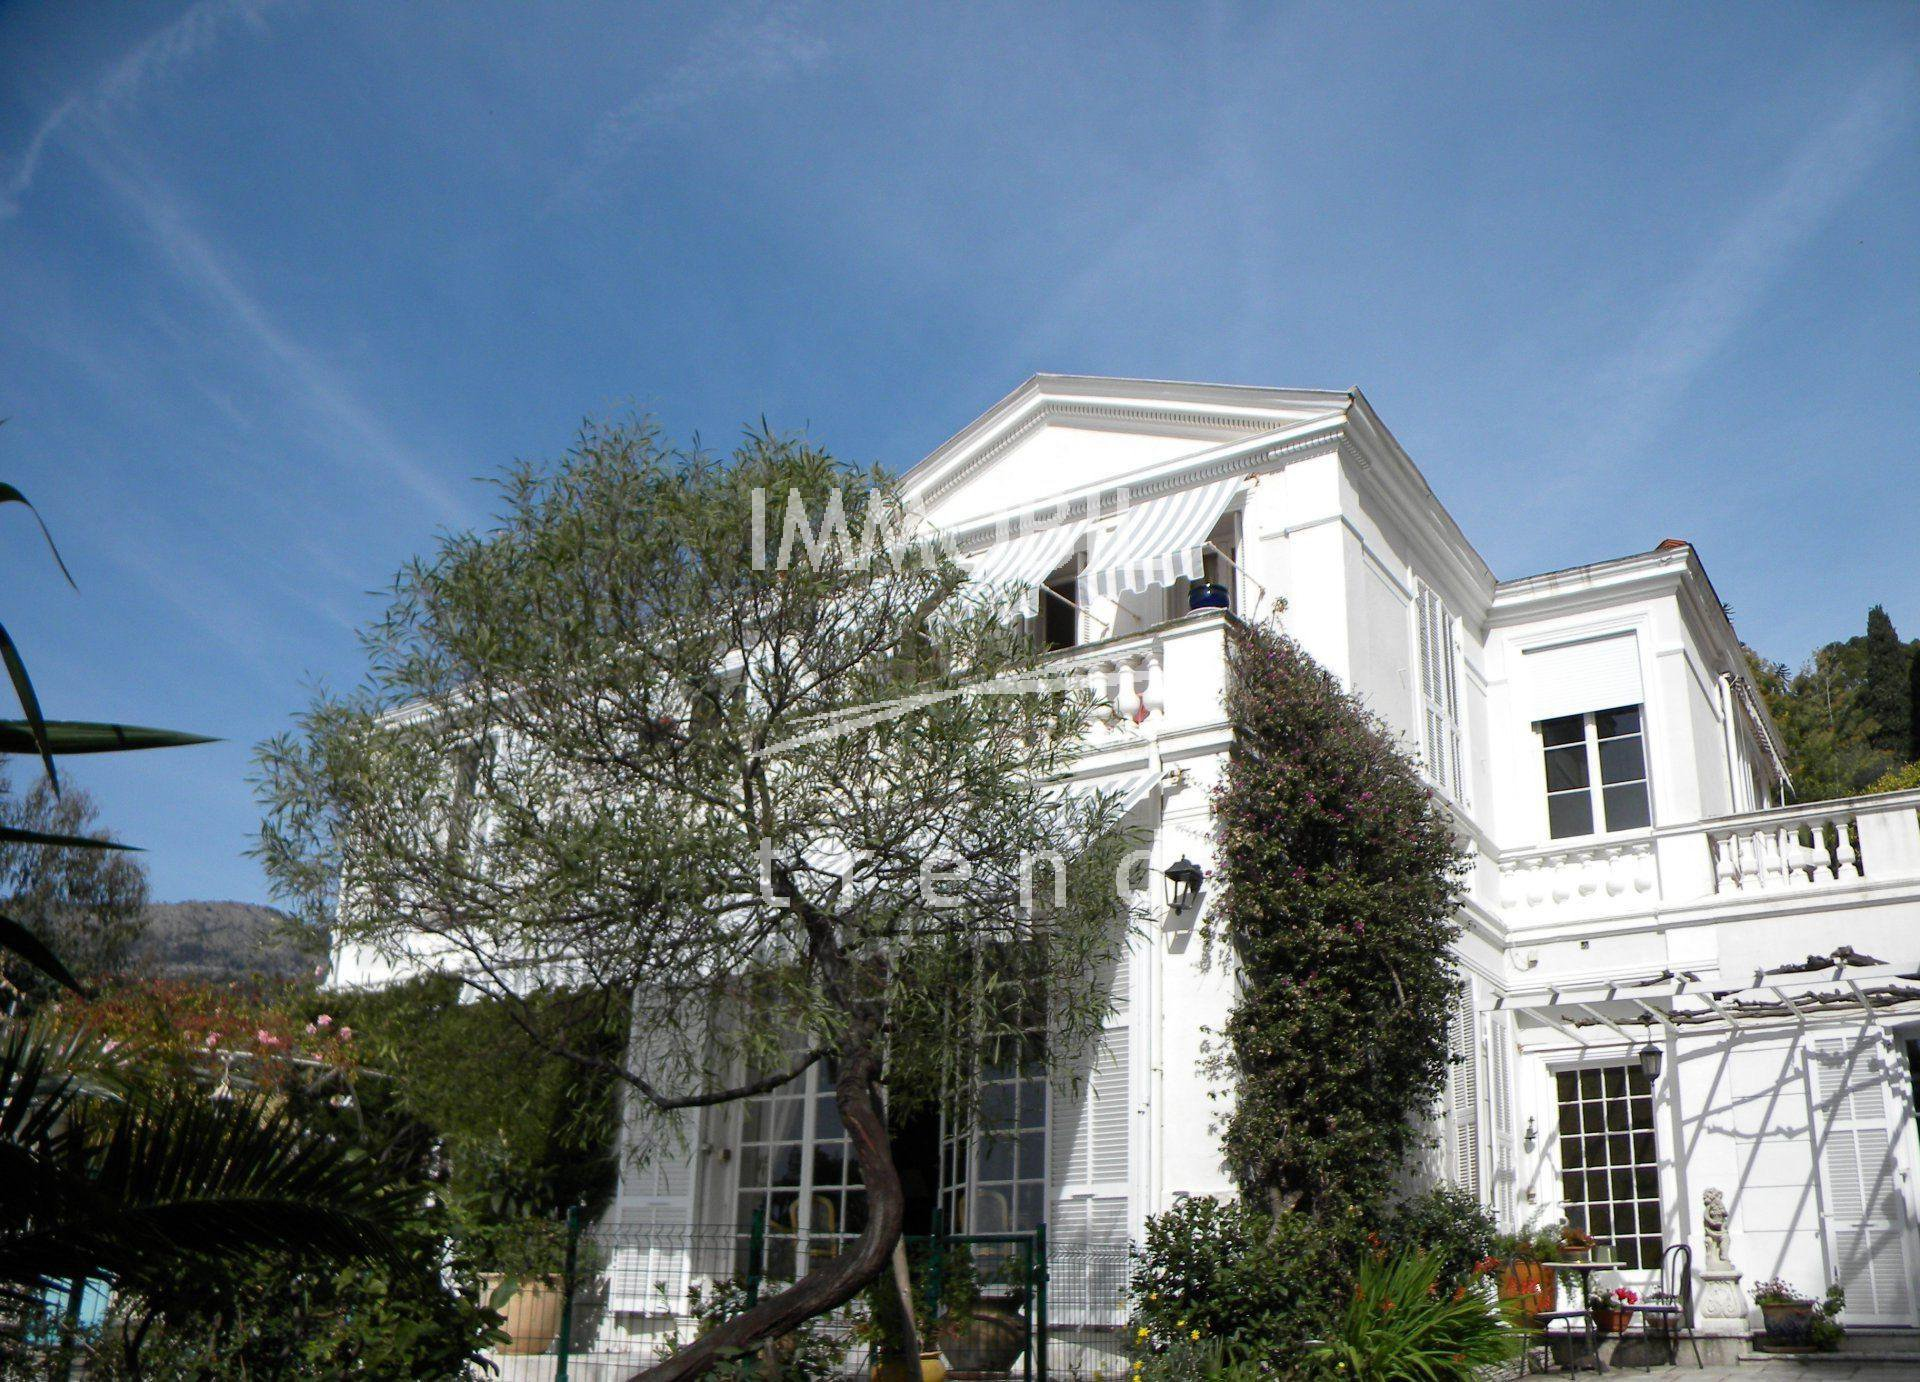 IMMOBILIER MENTON CENTRE VILLA BELLE EPOQUE  + DE 10 PIECES JARDIN PISCINE 4 PARKINGS VUE MER